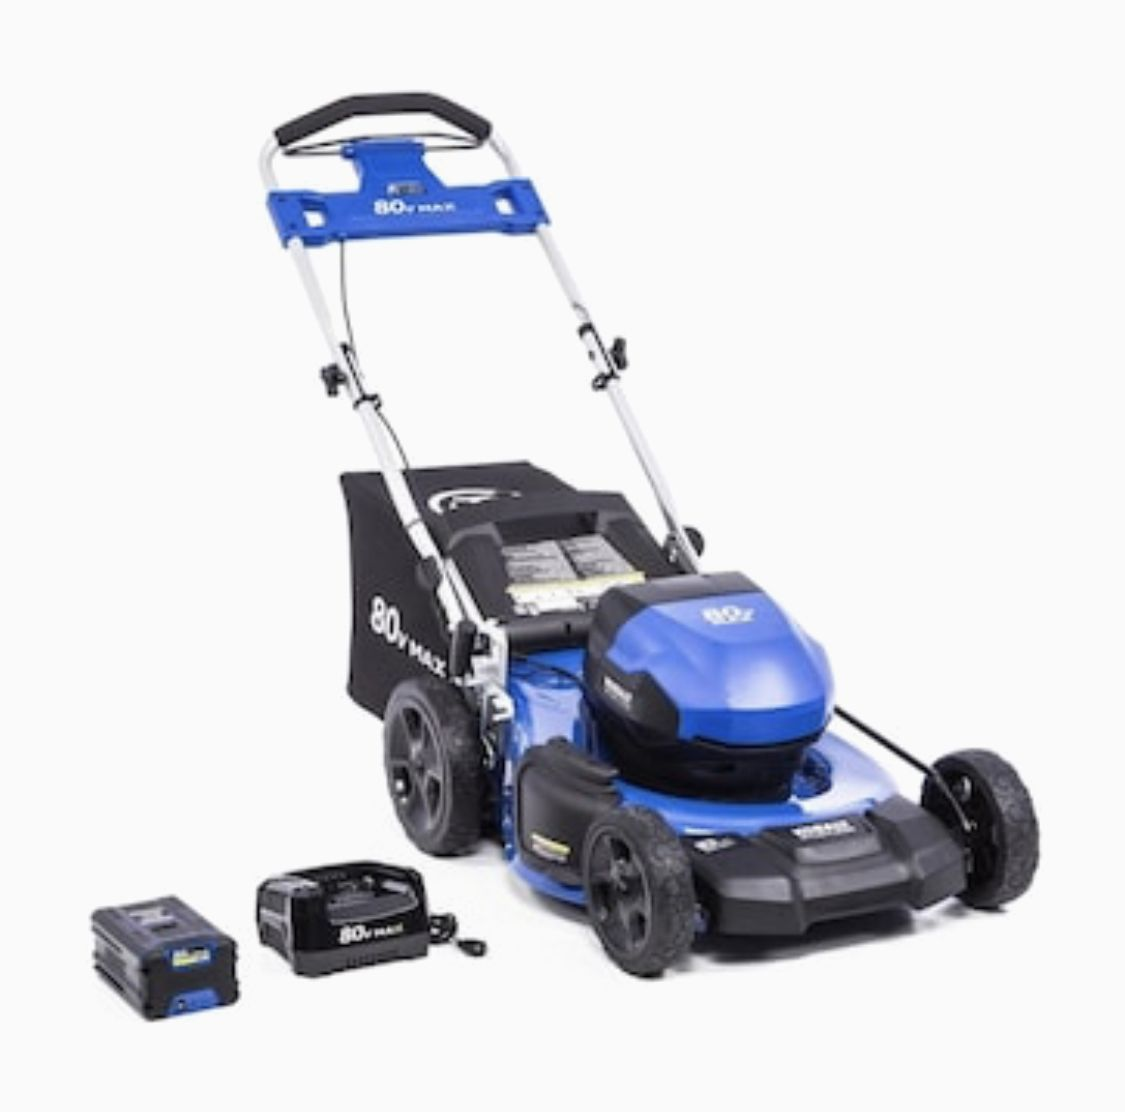 Kobalt 80 Volt Max Brushless Lithium Ion Push 21 In Cordless Electric Lawn Mower Battery Included Lowes Com In 2020 Lawn Mower Battery Lawn Mower Lawn Mower Storage